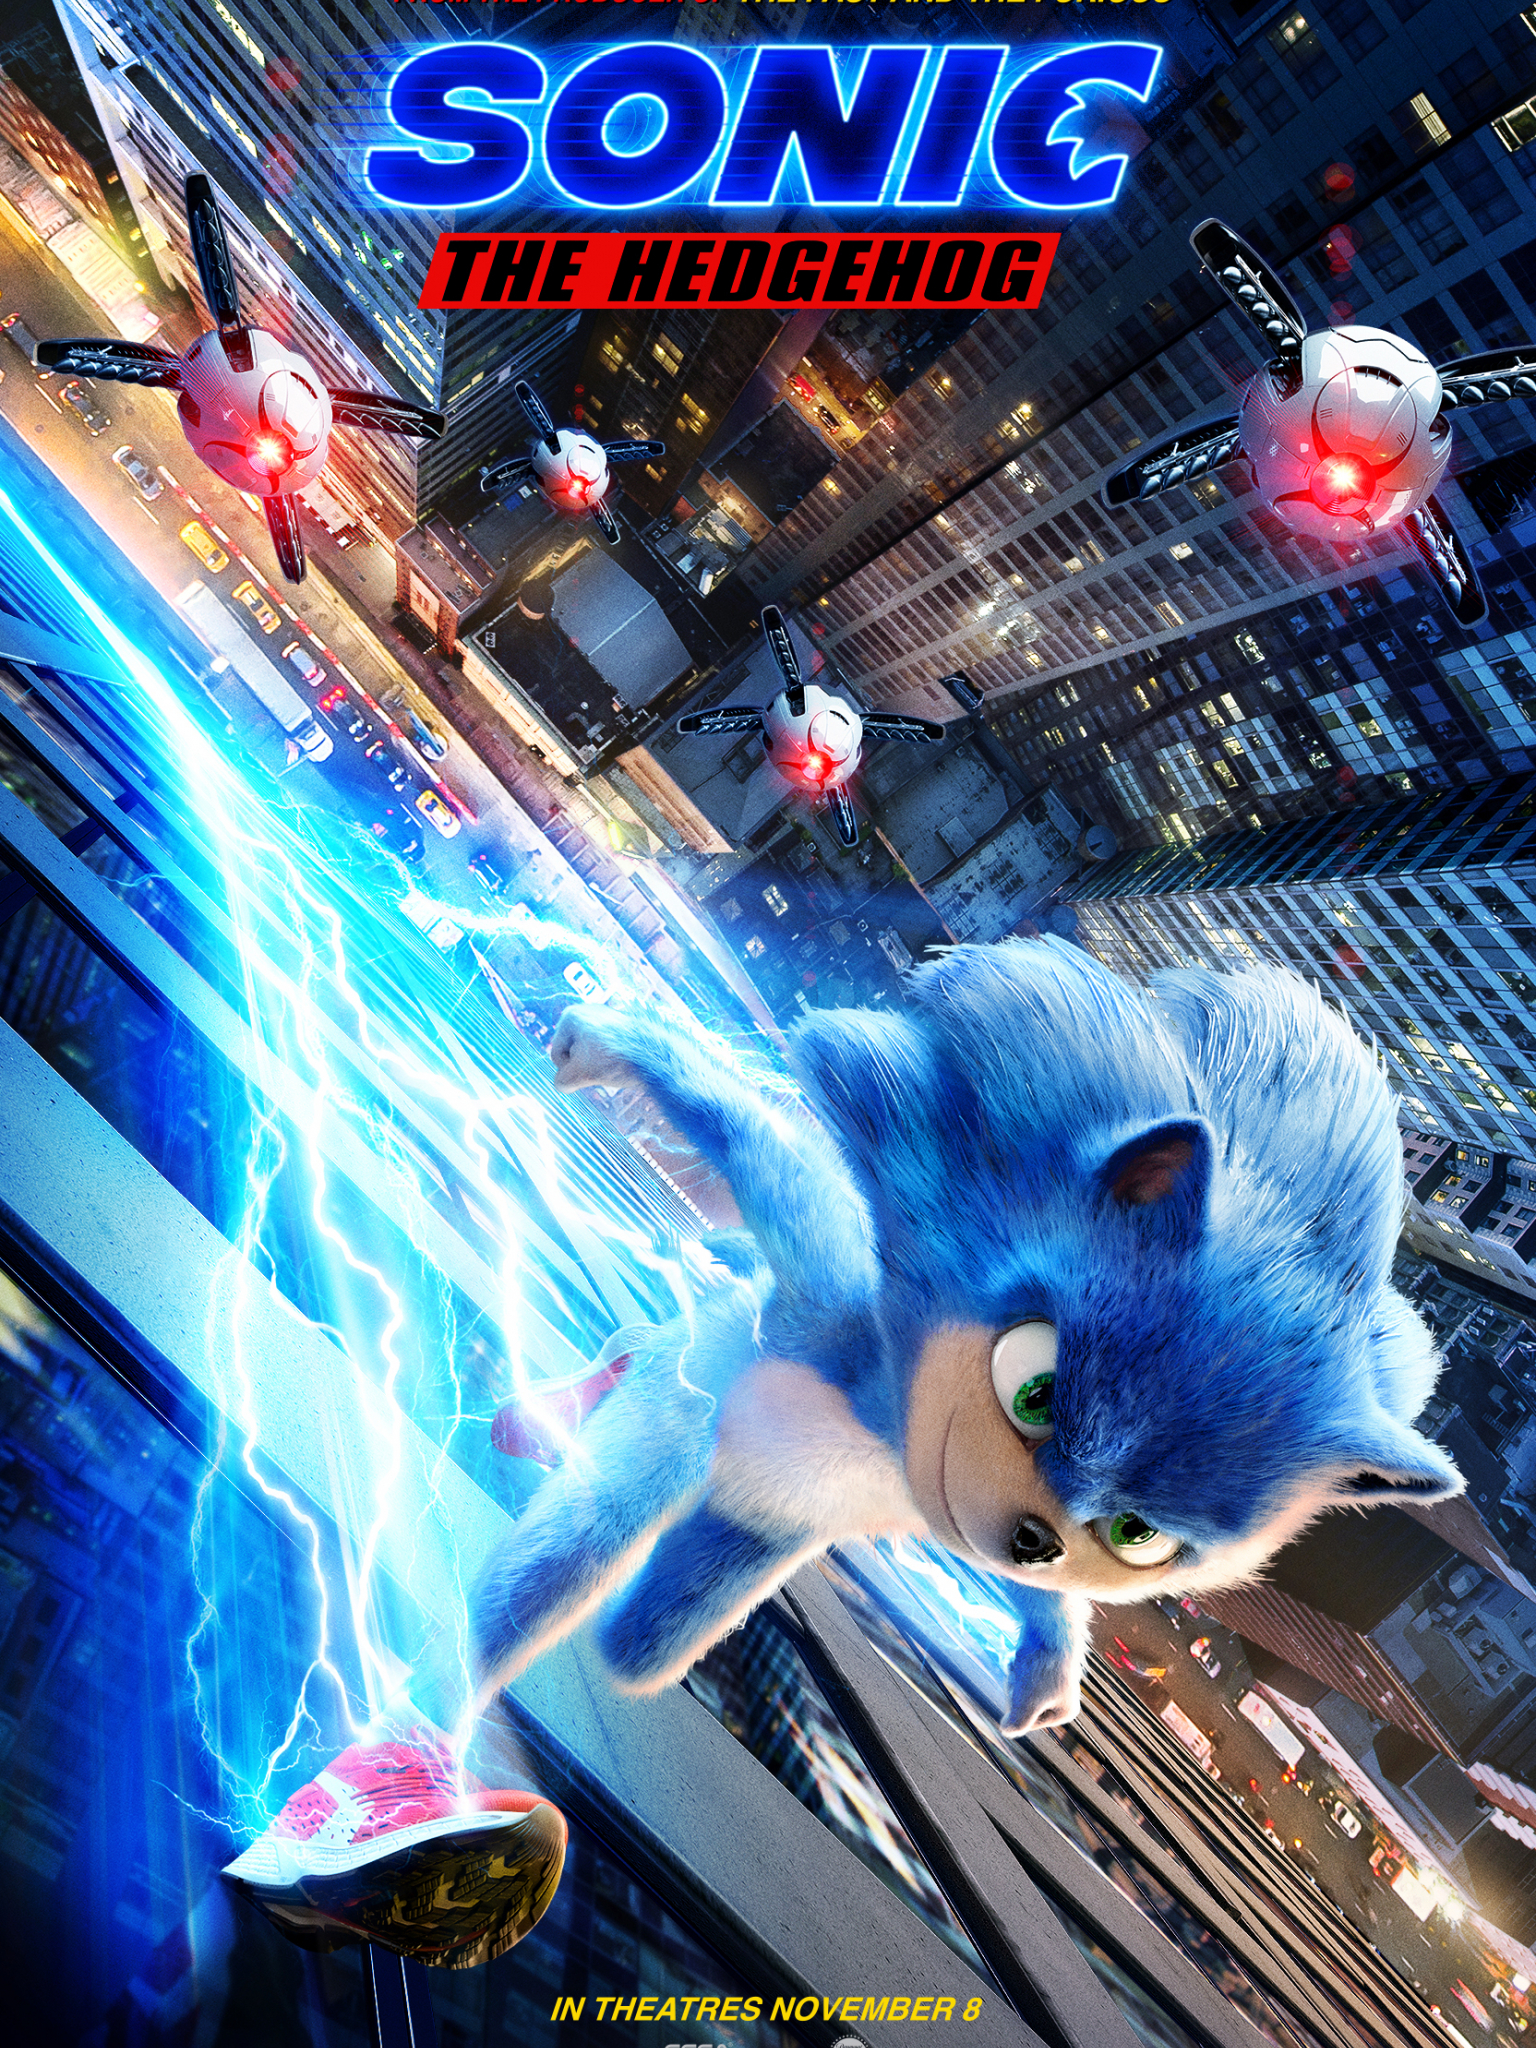 Free Download Sonic The Hedgehog 2020 Imdb 1664x2466 For Your Desktop Mobile Tablet Explore 19 Sonic The Hedgehog Movie 2019 Wallpapers Sonic The Hedgehog Movie 2019 Wallpapers Sonic The